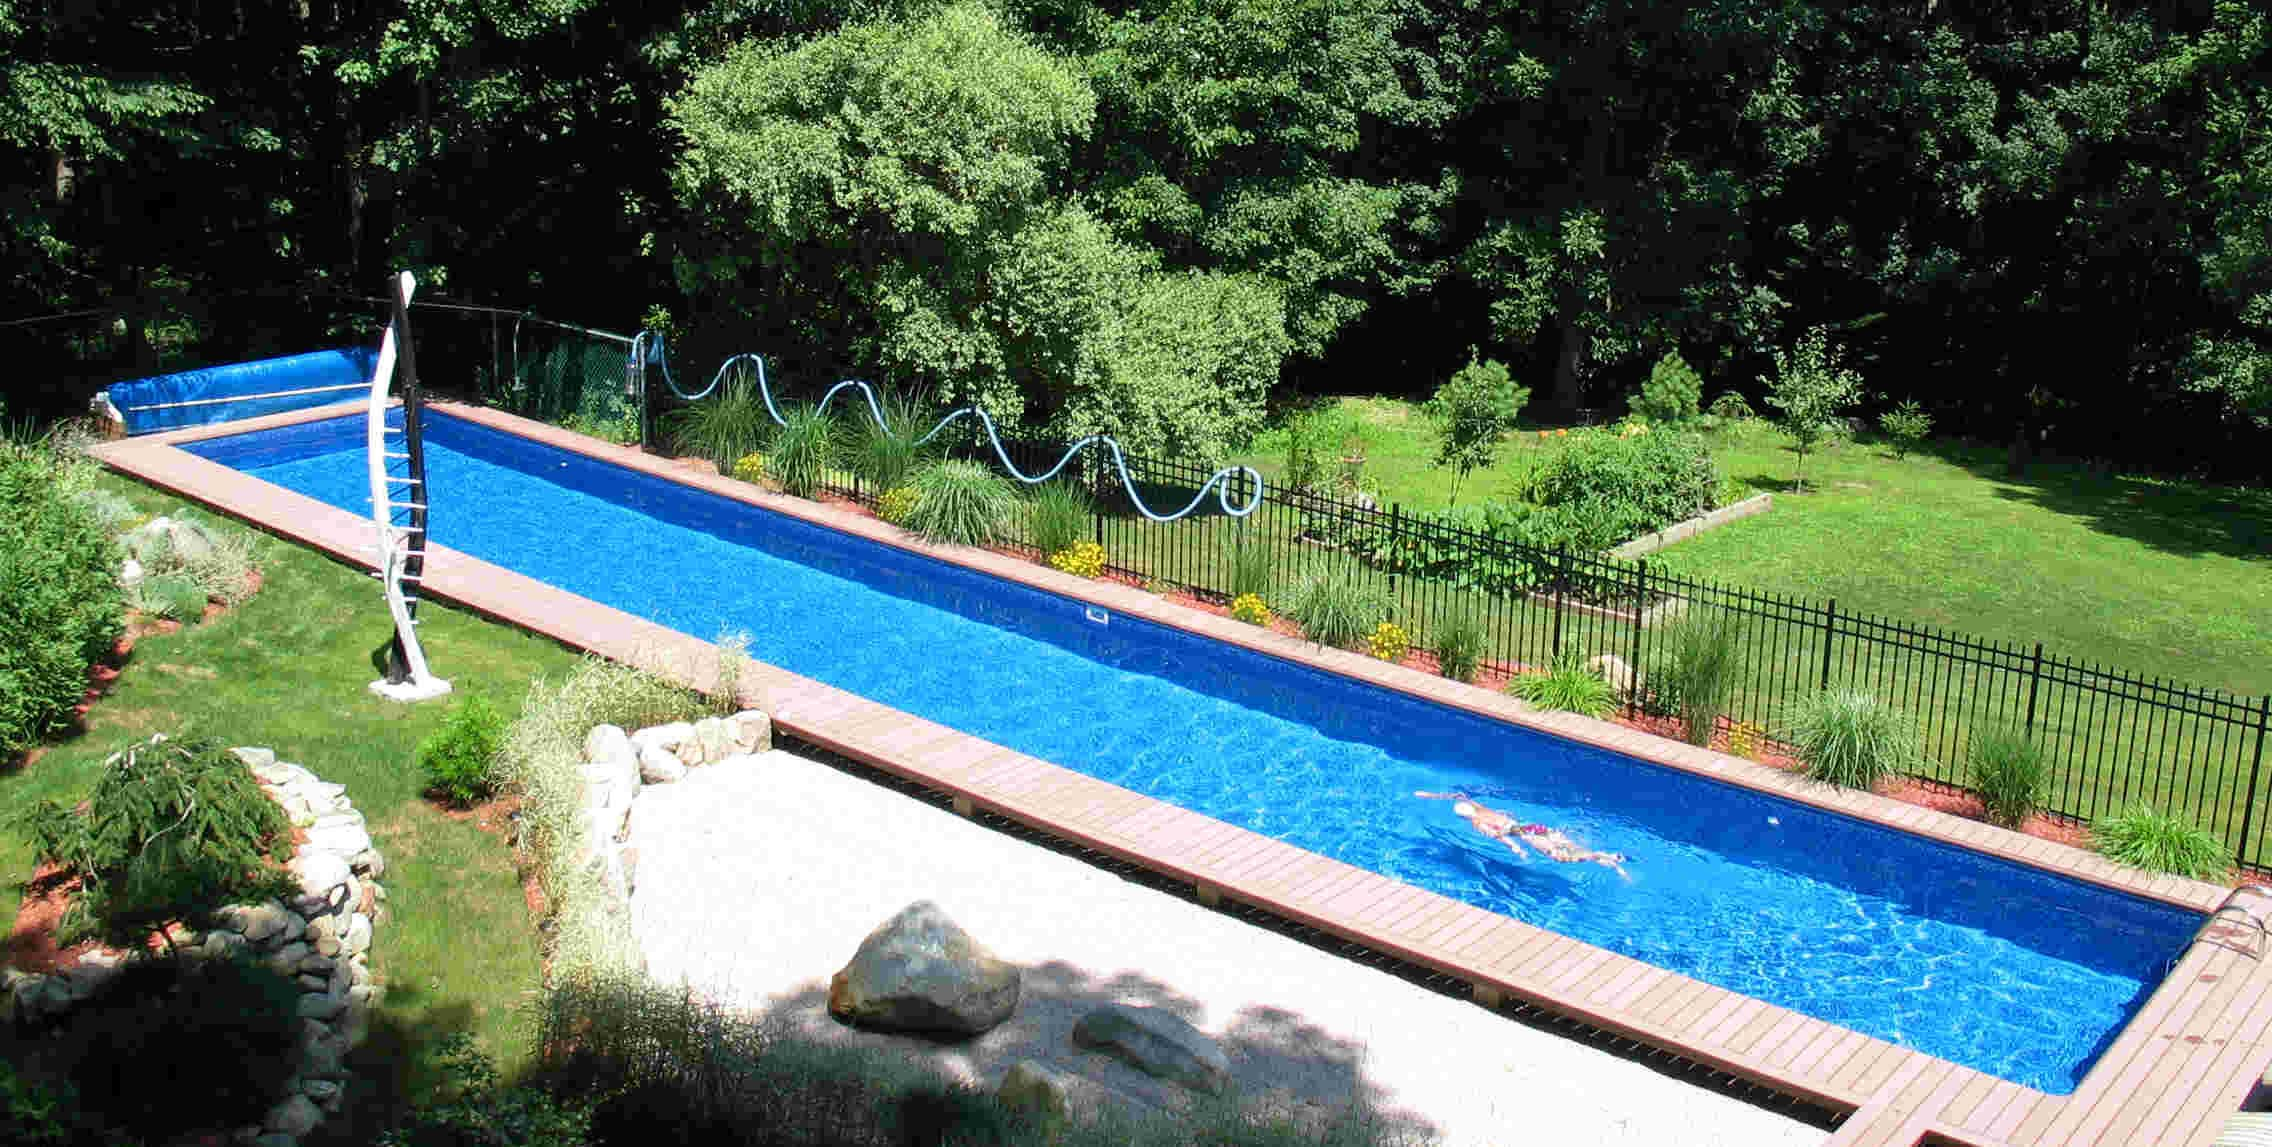 Diy inground swimming pool backyard design ideas for Pool prices